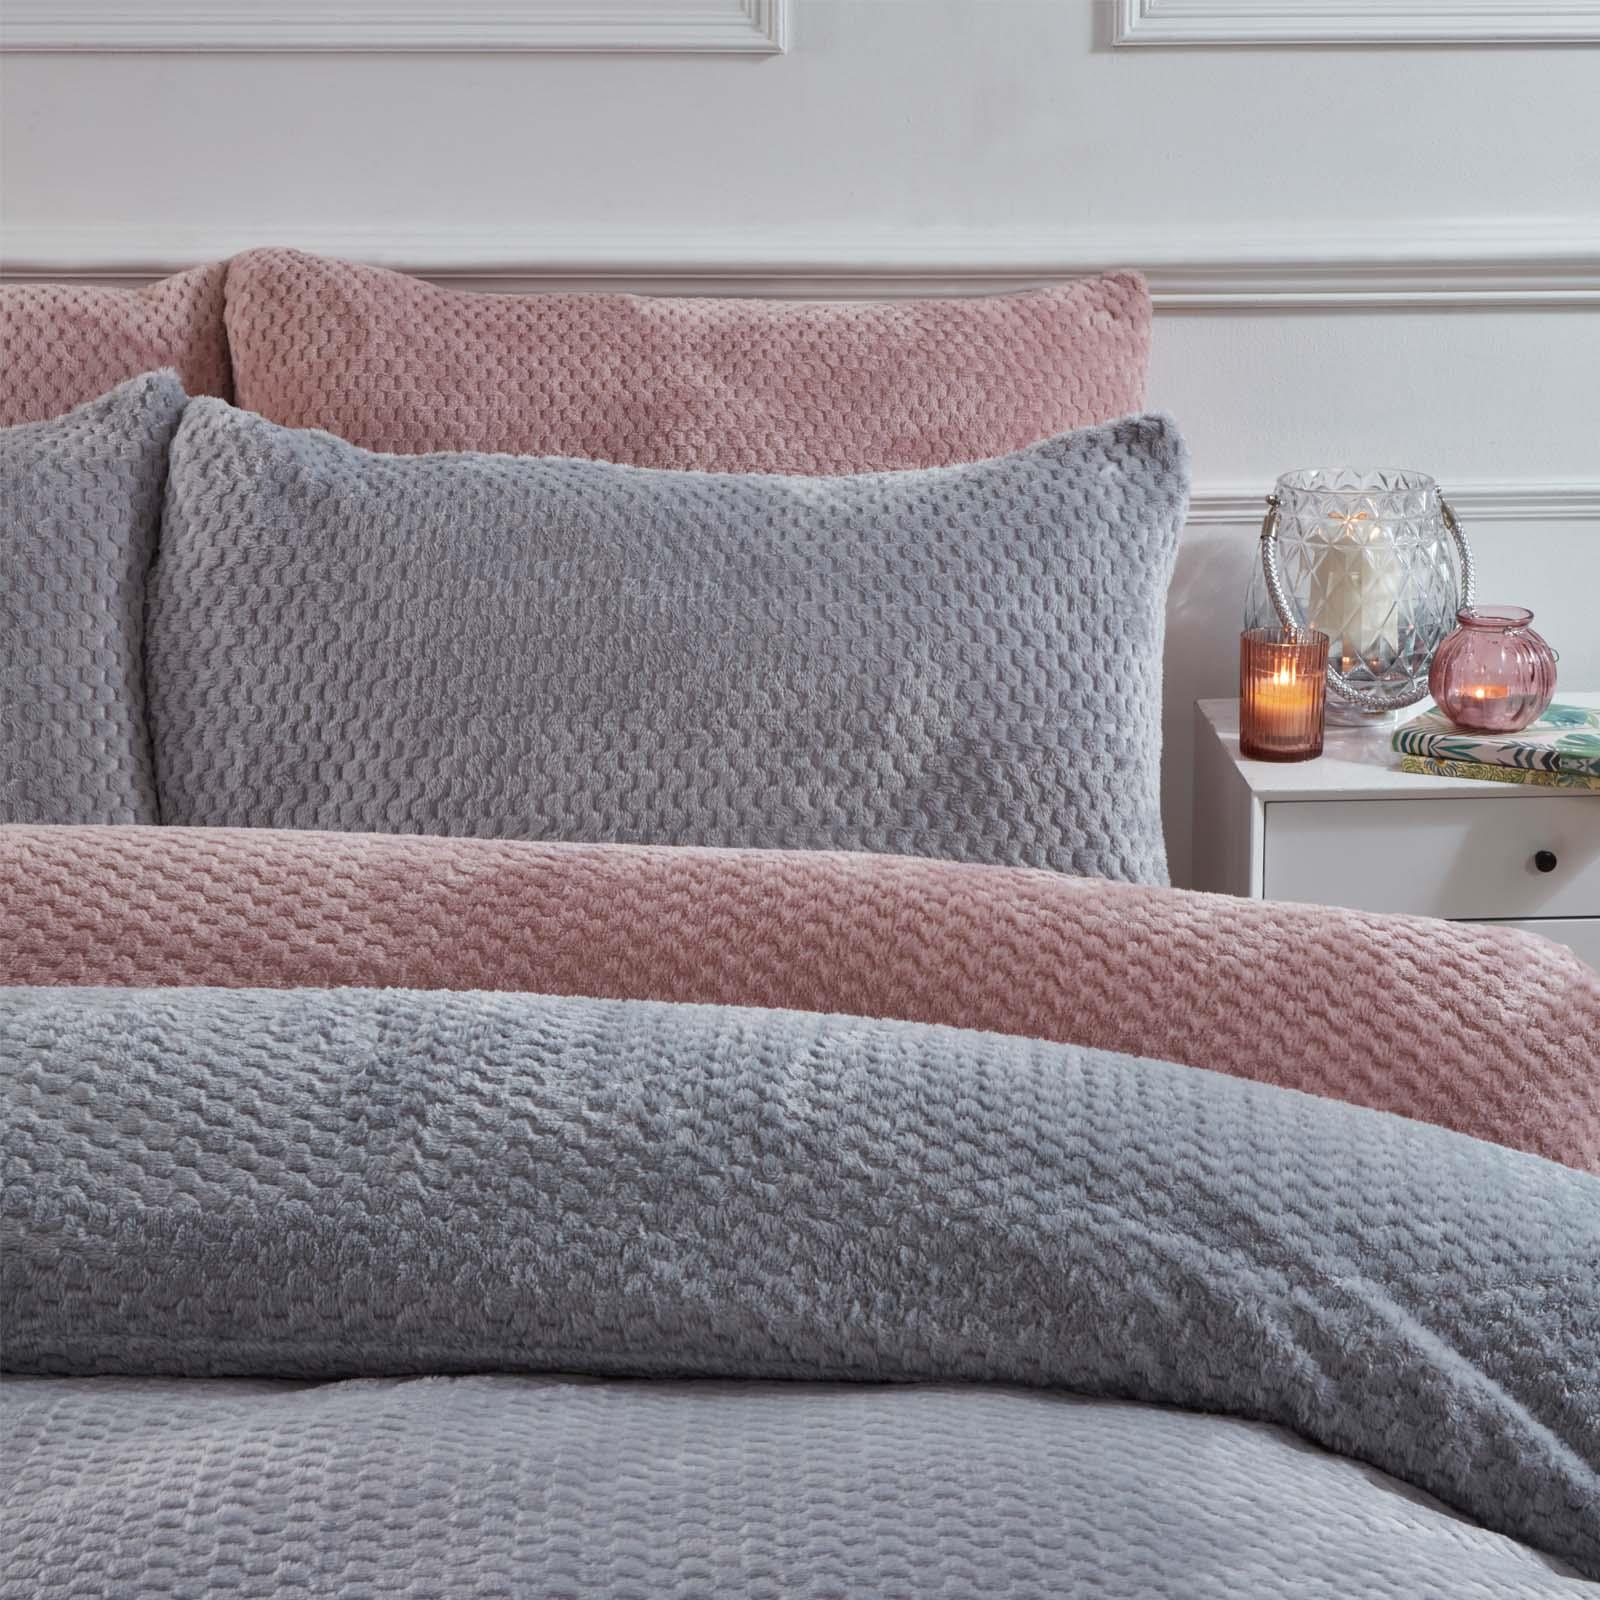 Brentfords-Warm-Waffle-Fleece-Duvet-Cover-with-Pillowcase-Soft-Cosy-Bedding-Set thumbnail 16